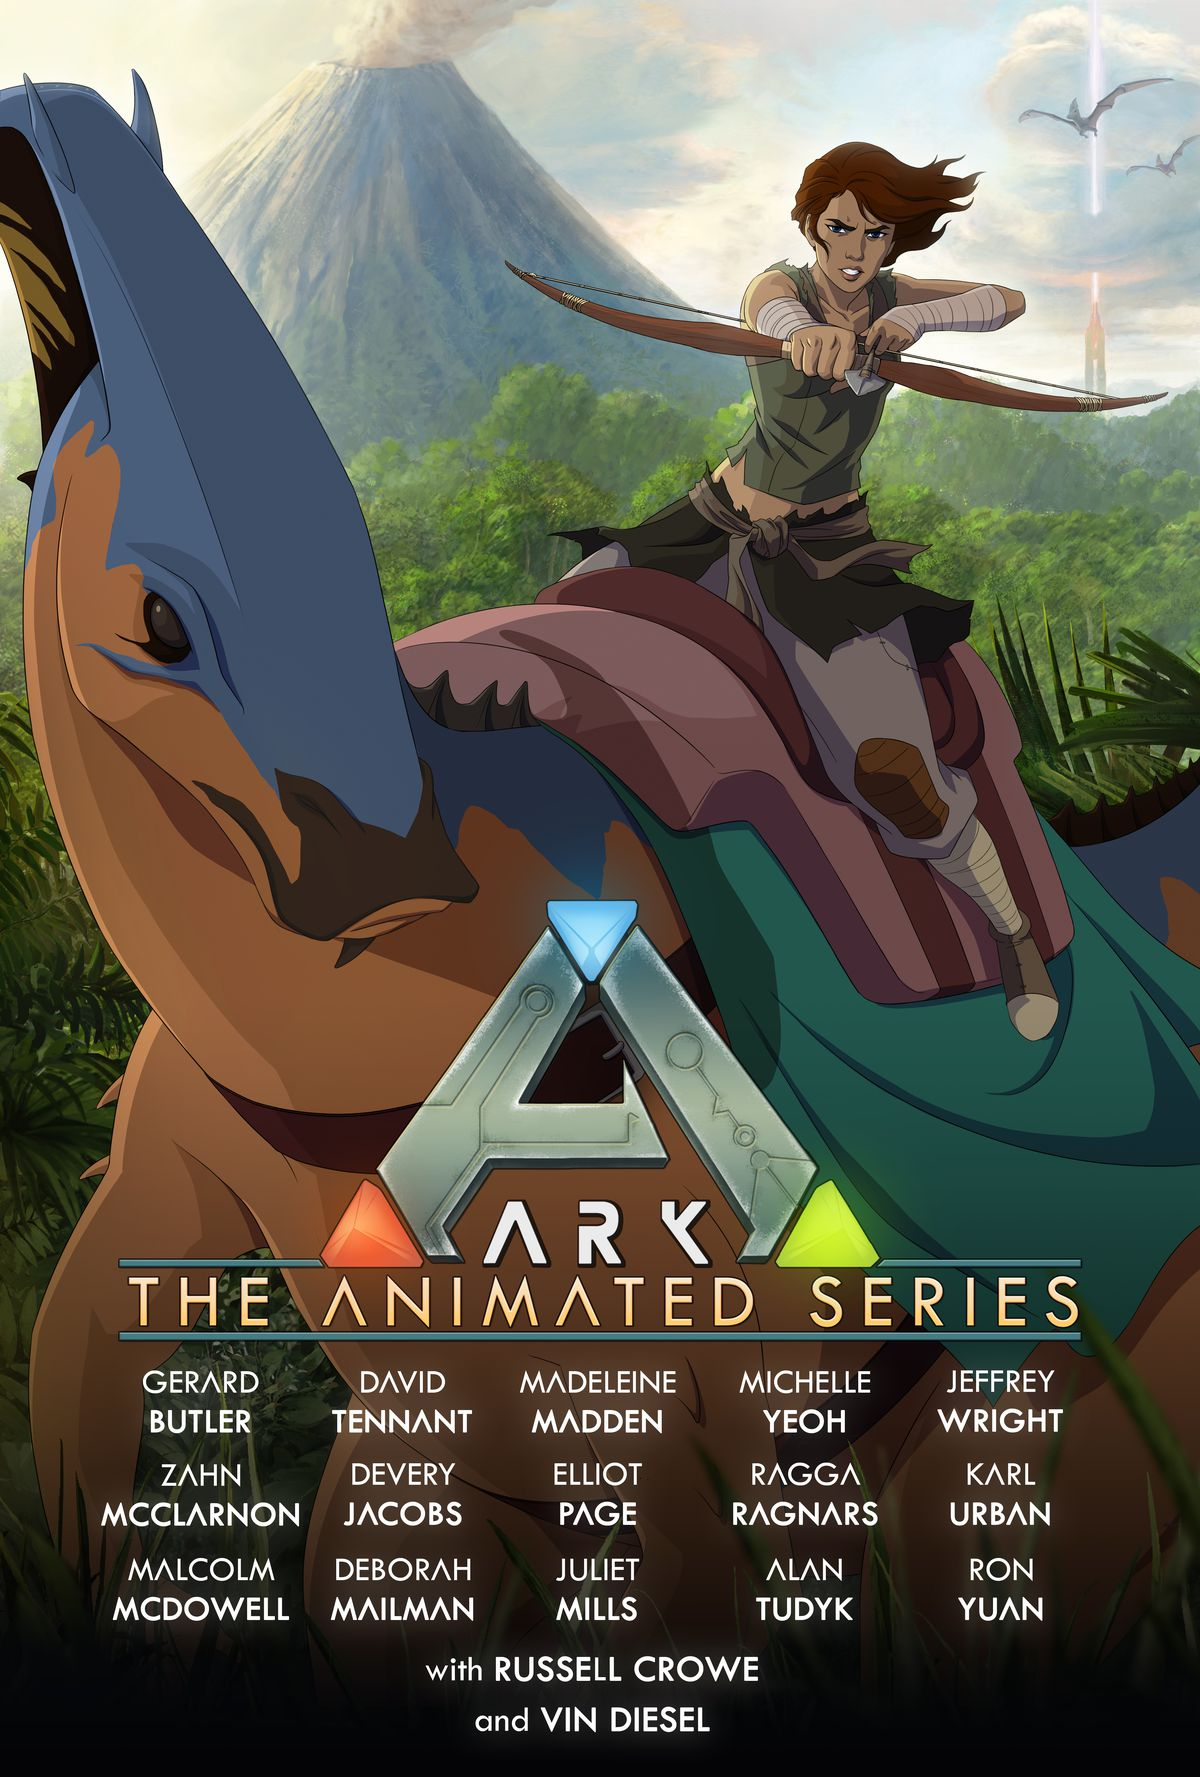 The poster for Ark: The Animated Series features a young woman with a bow riding a duck-billed dinosaur.